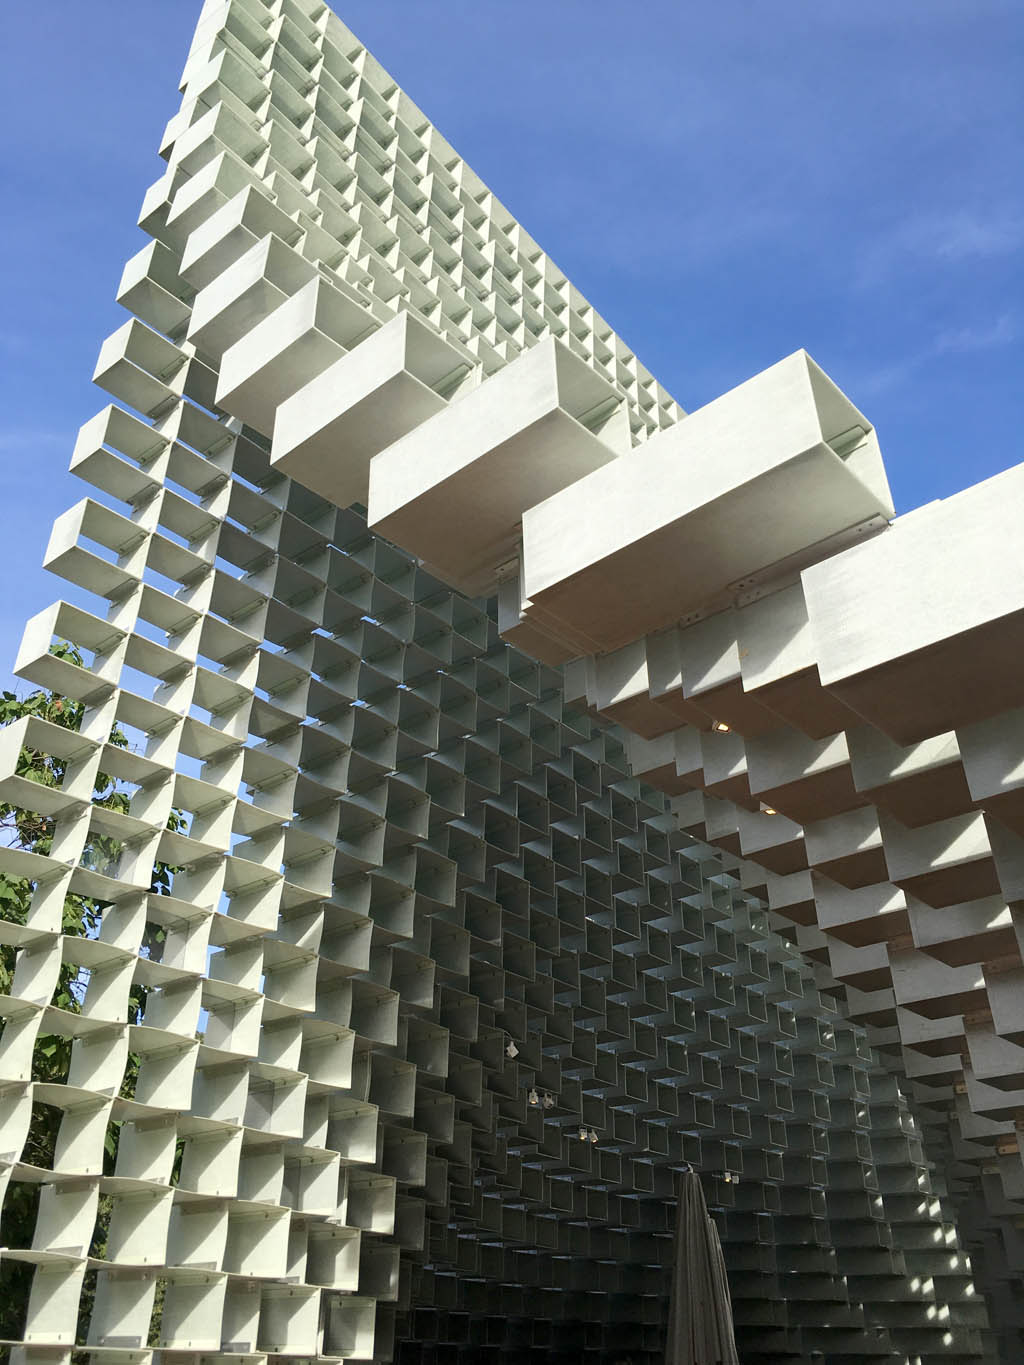 Serpentine_pavillion